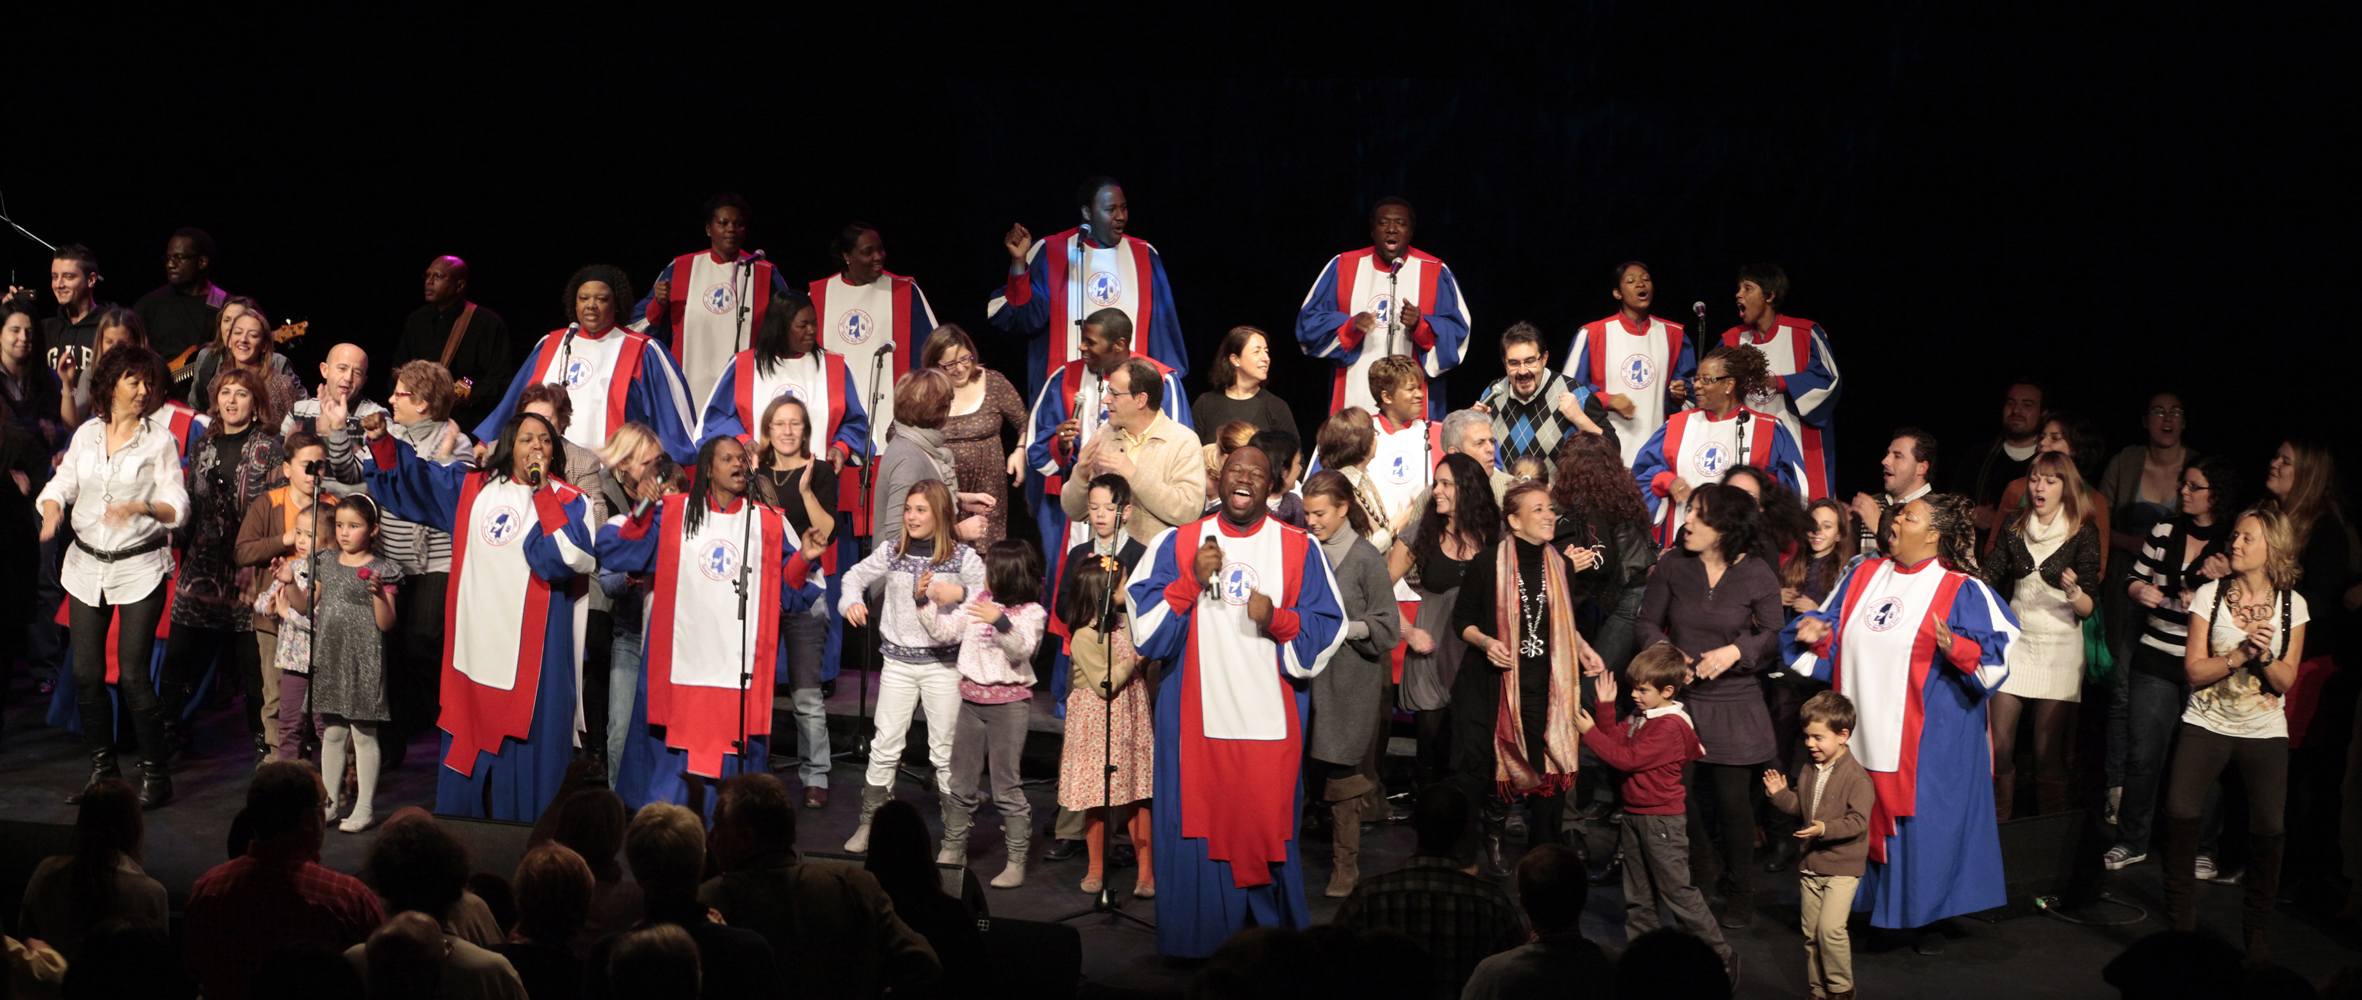 Masterclass impartida por The Mississipi Mass Choir